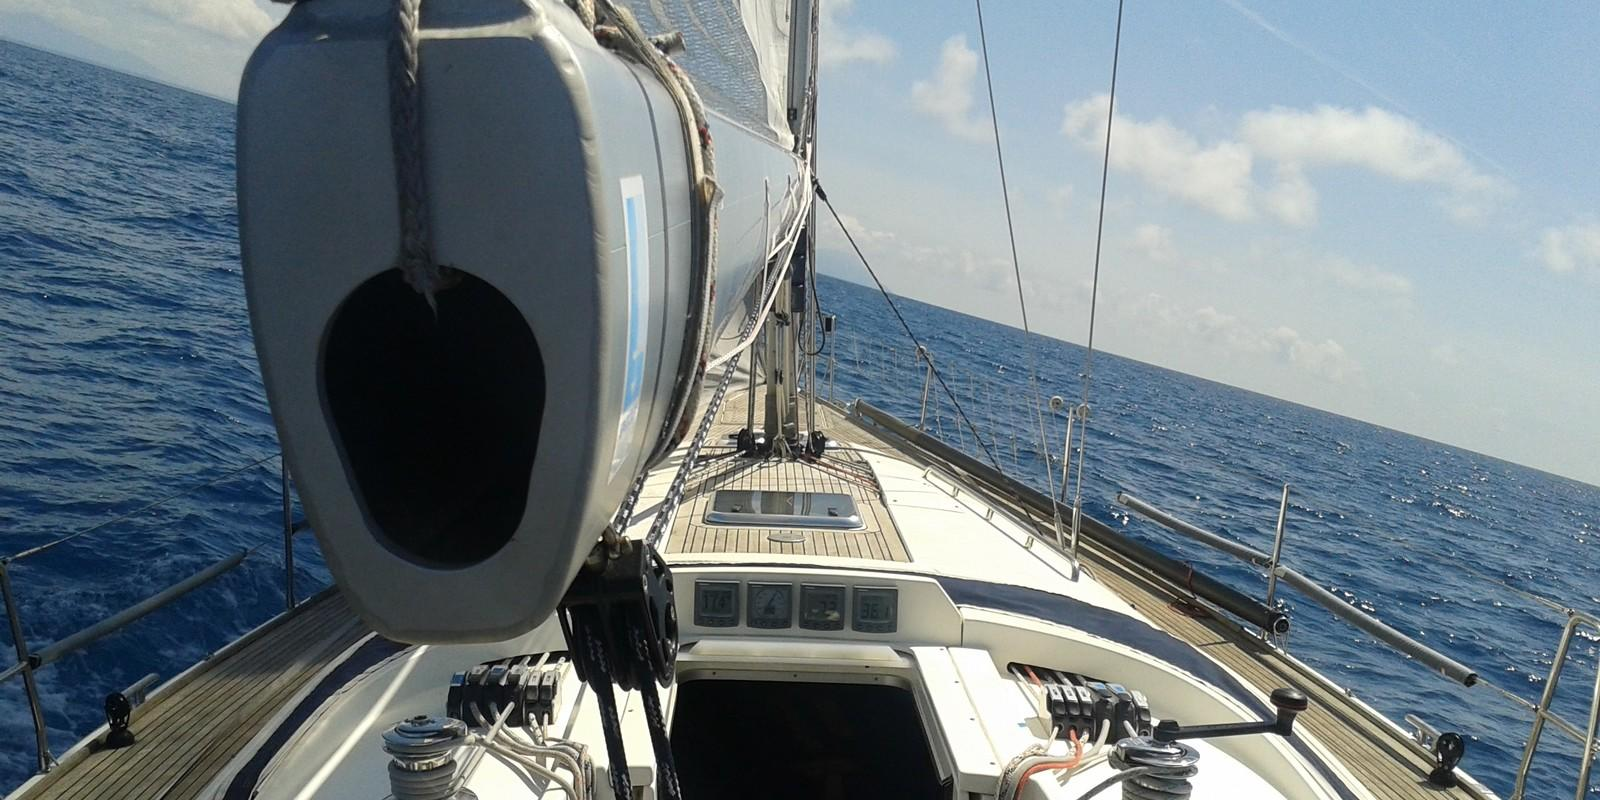 Cruise on a sailboat to Ponza Ventotene and Ischia ... Yes!